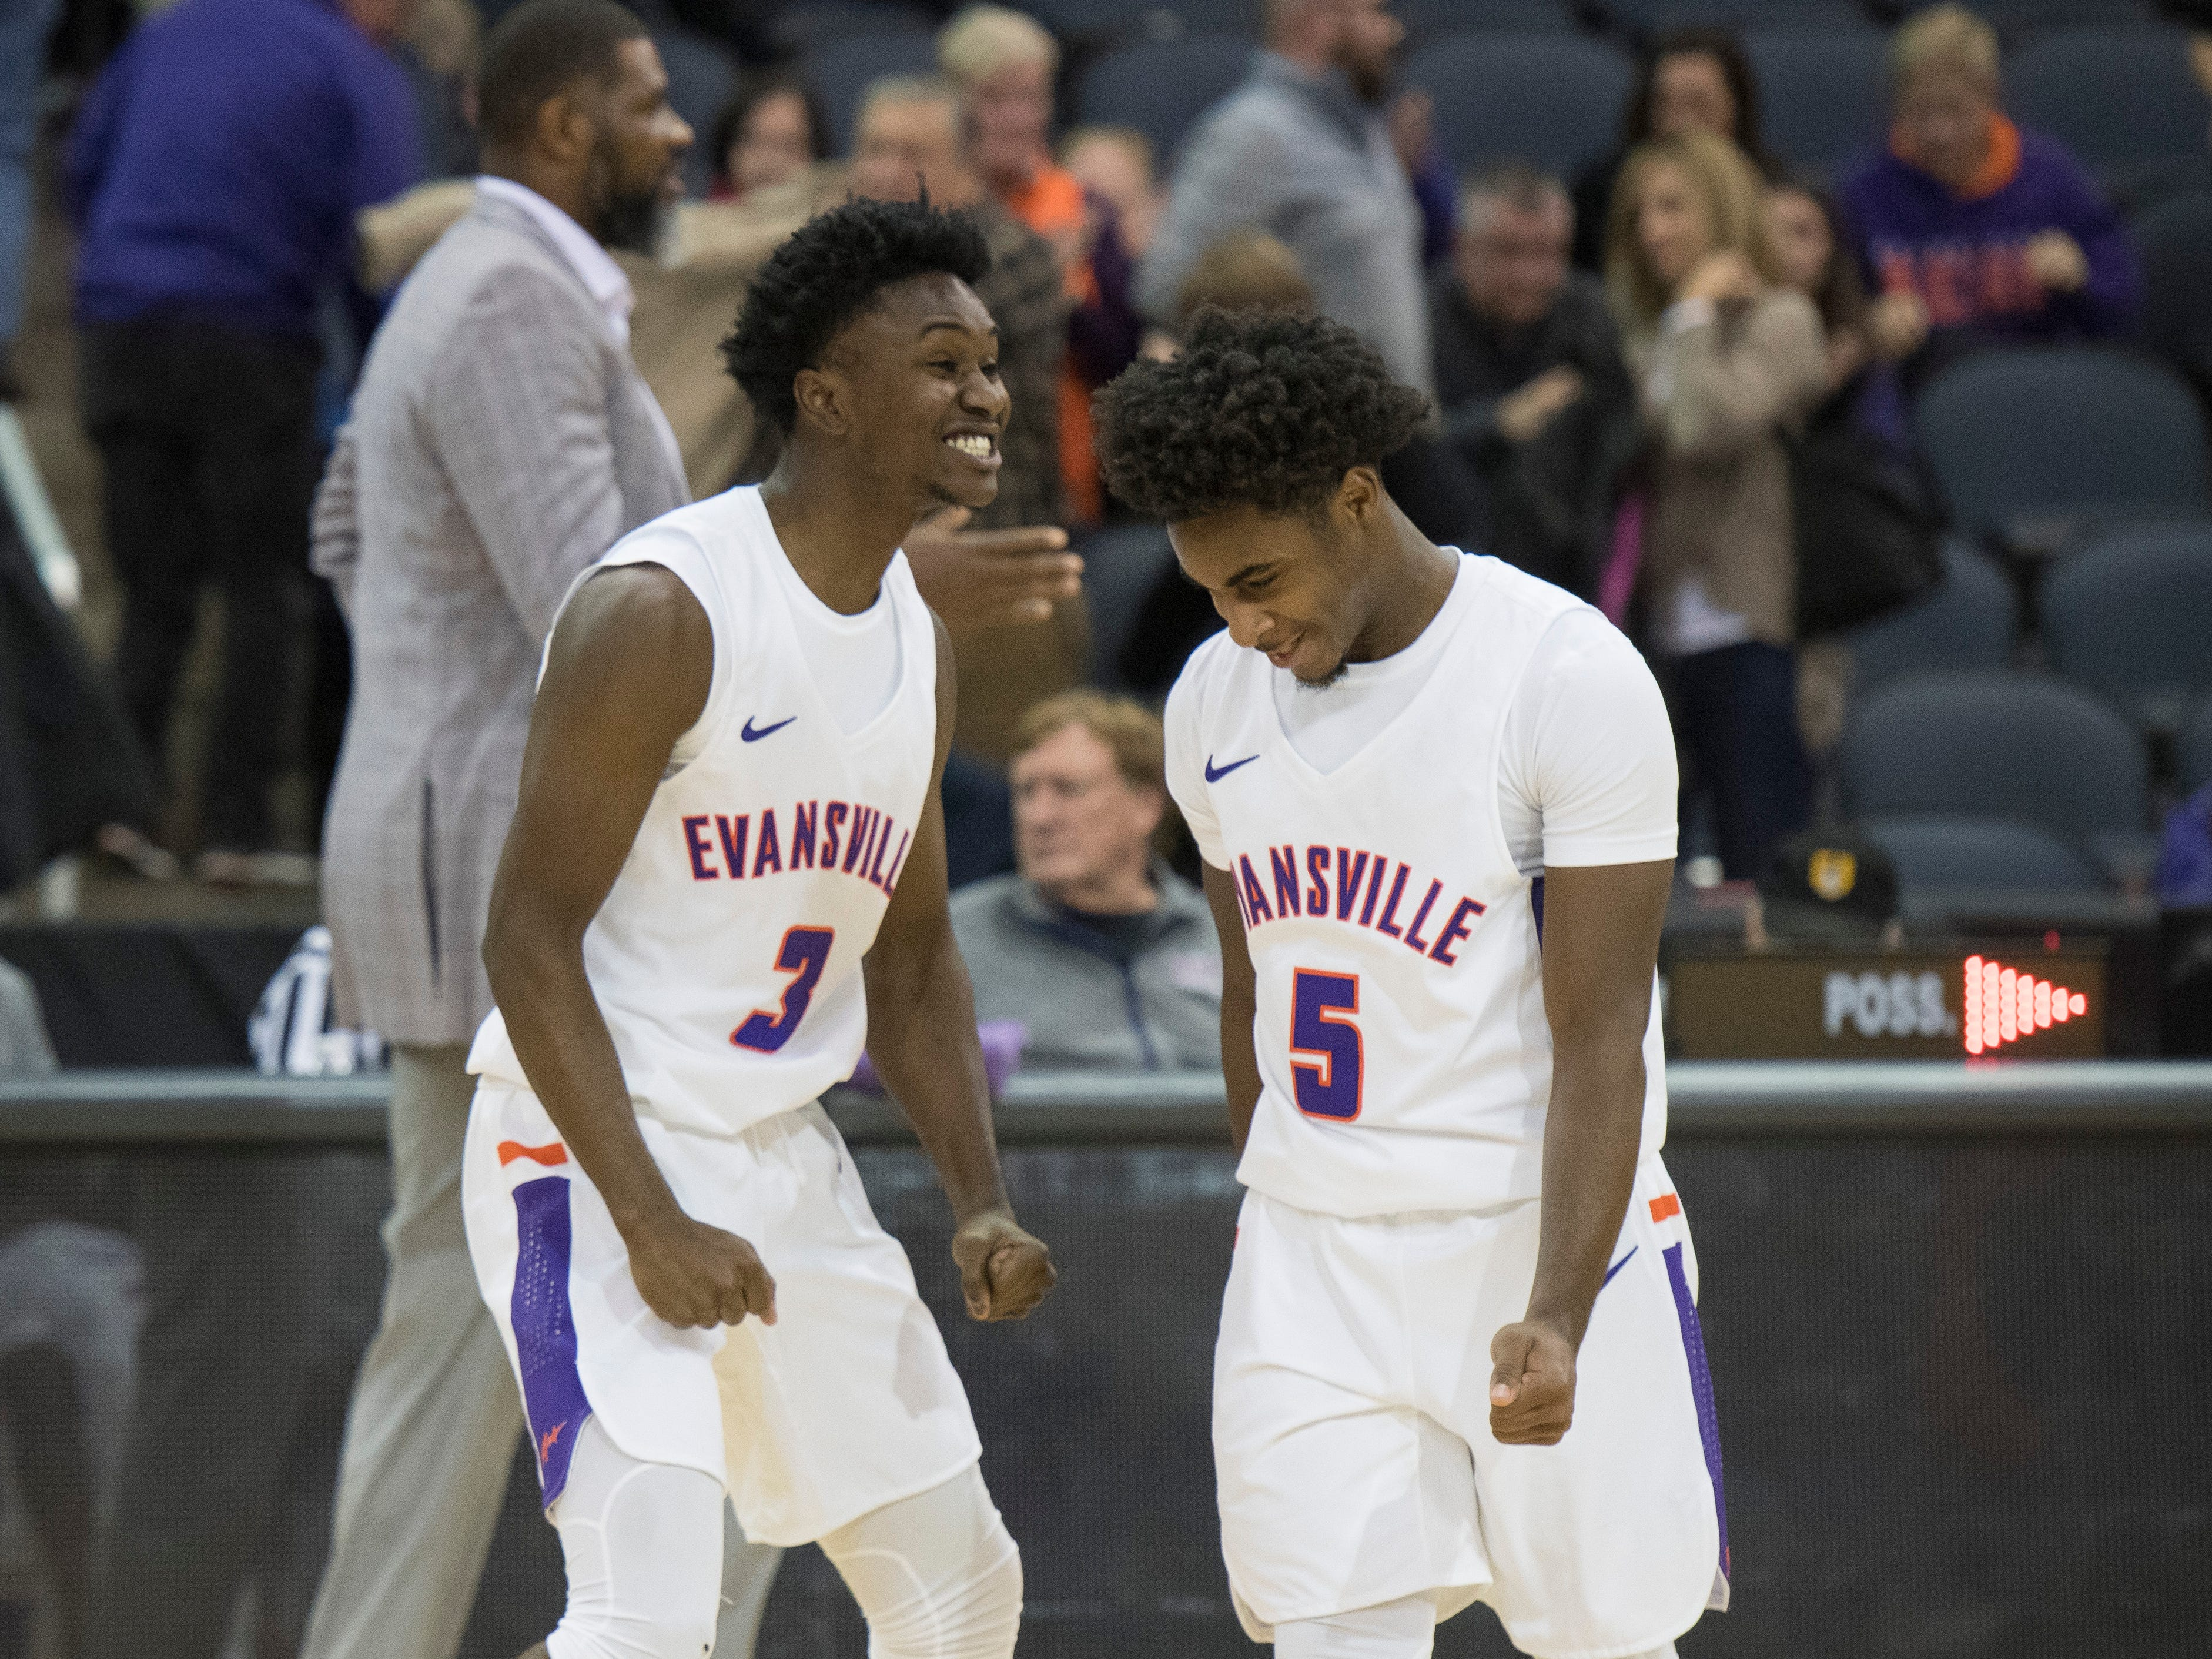 UE's Jawaun Newton (3) celebrates with Shamar Givance (5) after the 86-76 viceroy over Wyoming at the Ford Center Wednesday, Nov. 28, 2018.